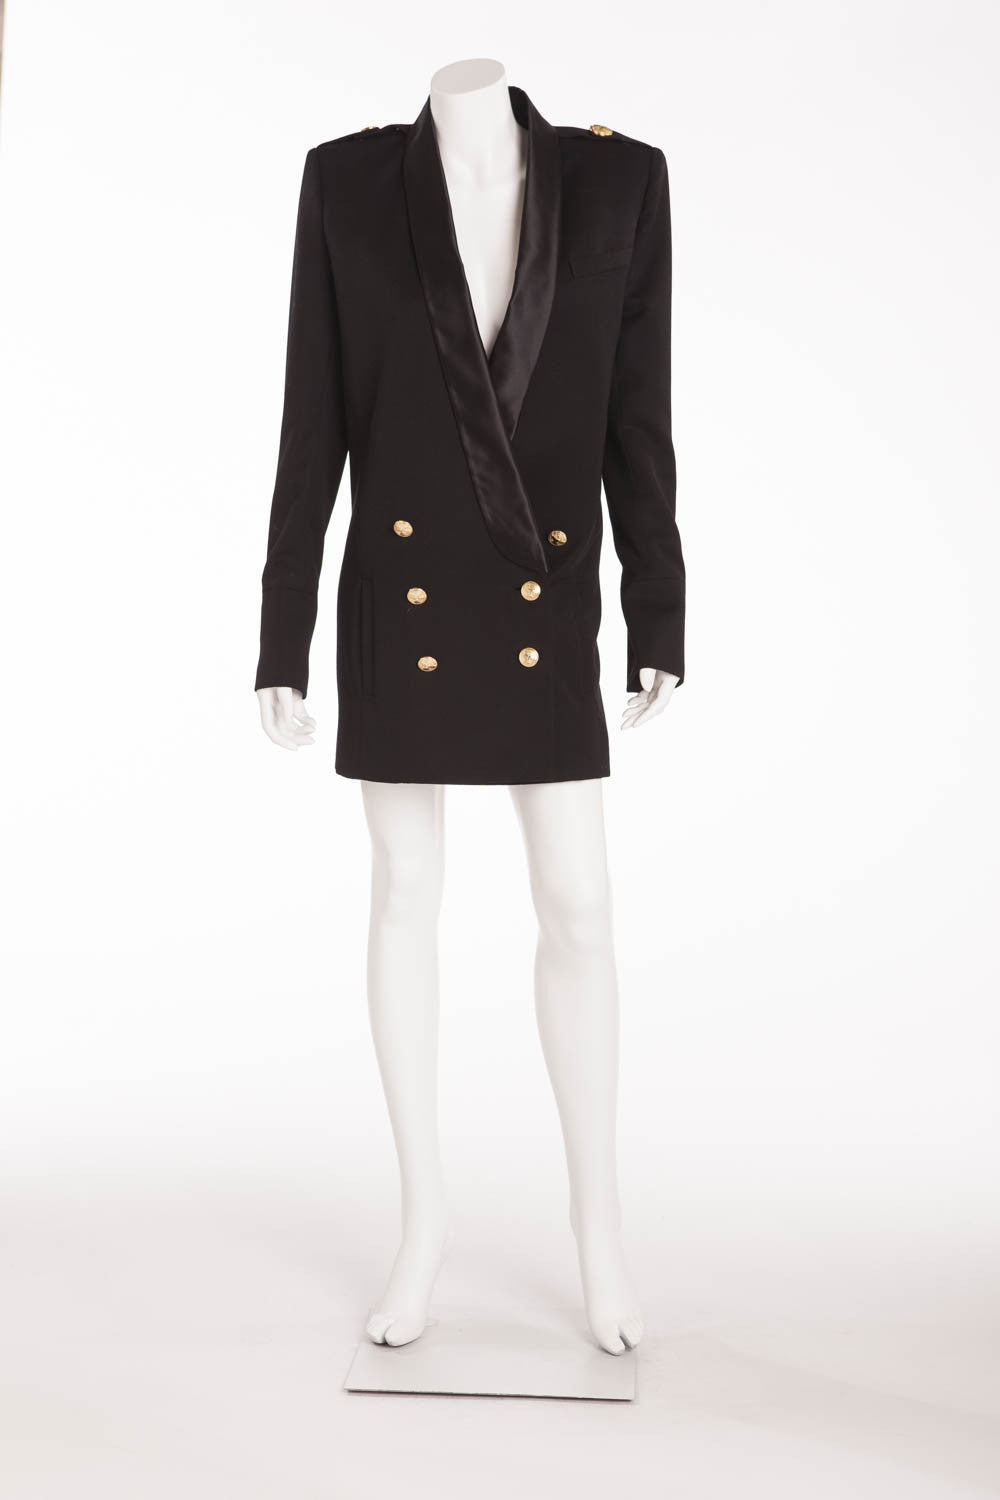 Balmain - As Seen on Kim Kardashian - Black Blazer Dress with Silk Trim and Gold Buttons - FR 38